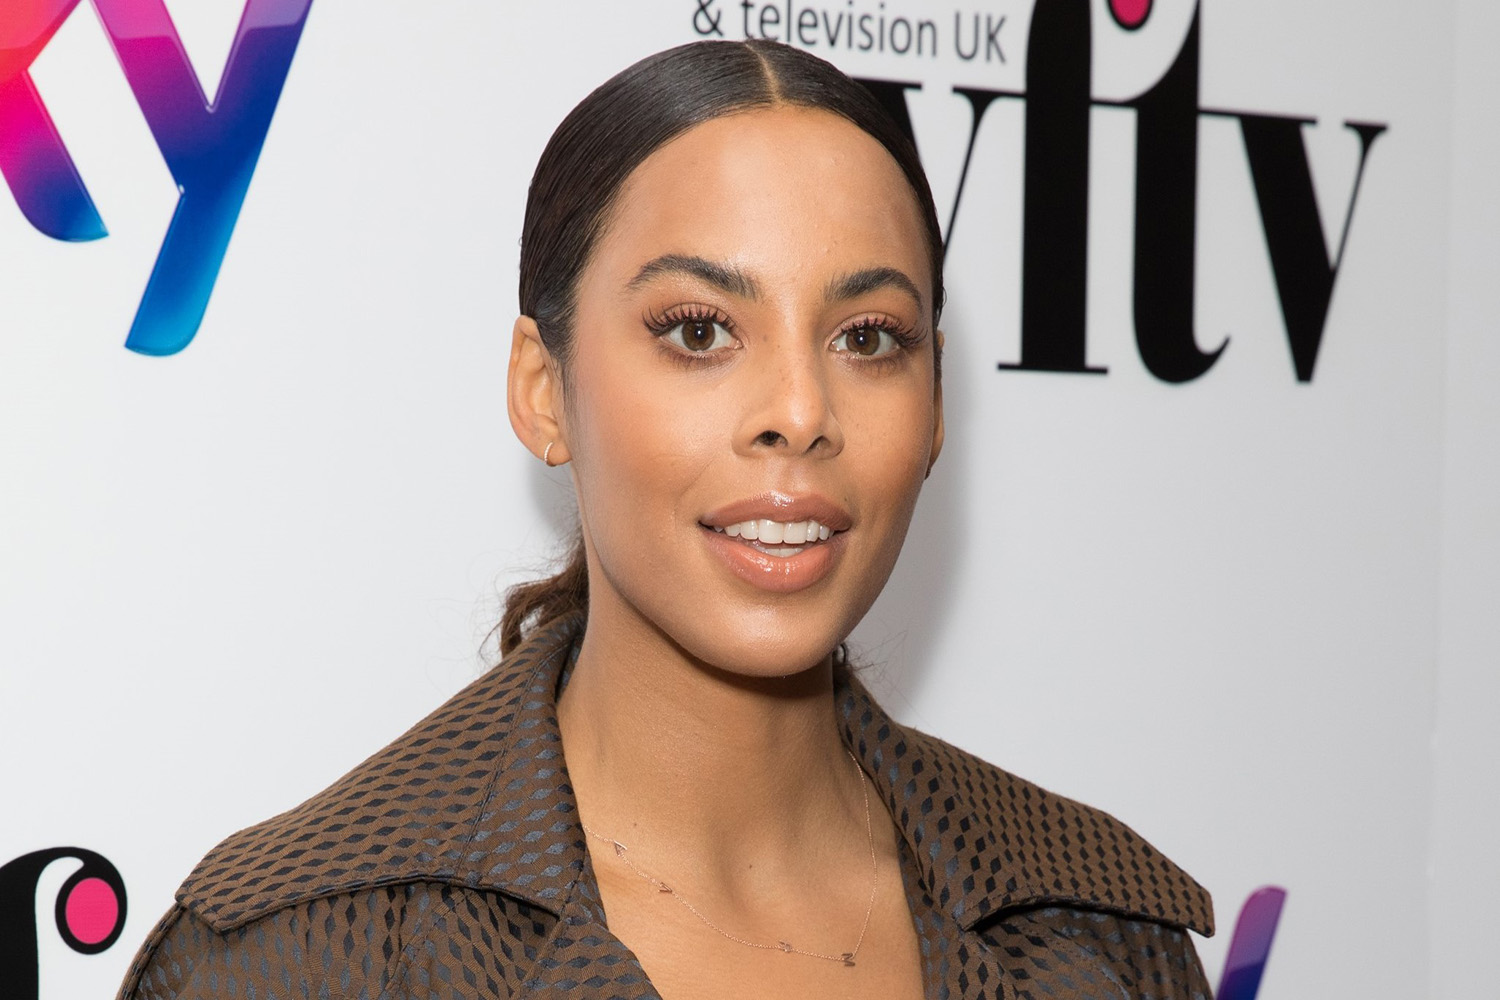 Rochelle Humes begs fans for help as she reveals pregnancy struggle